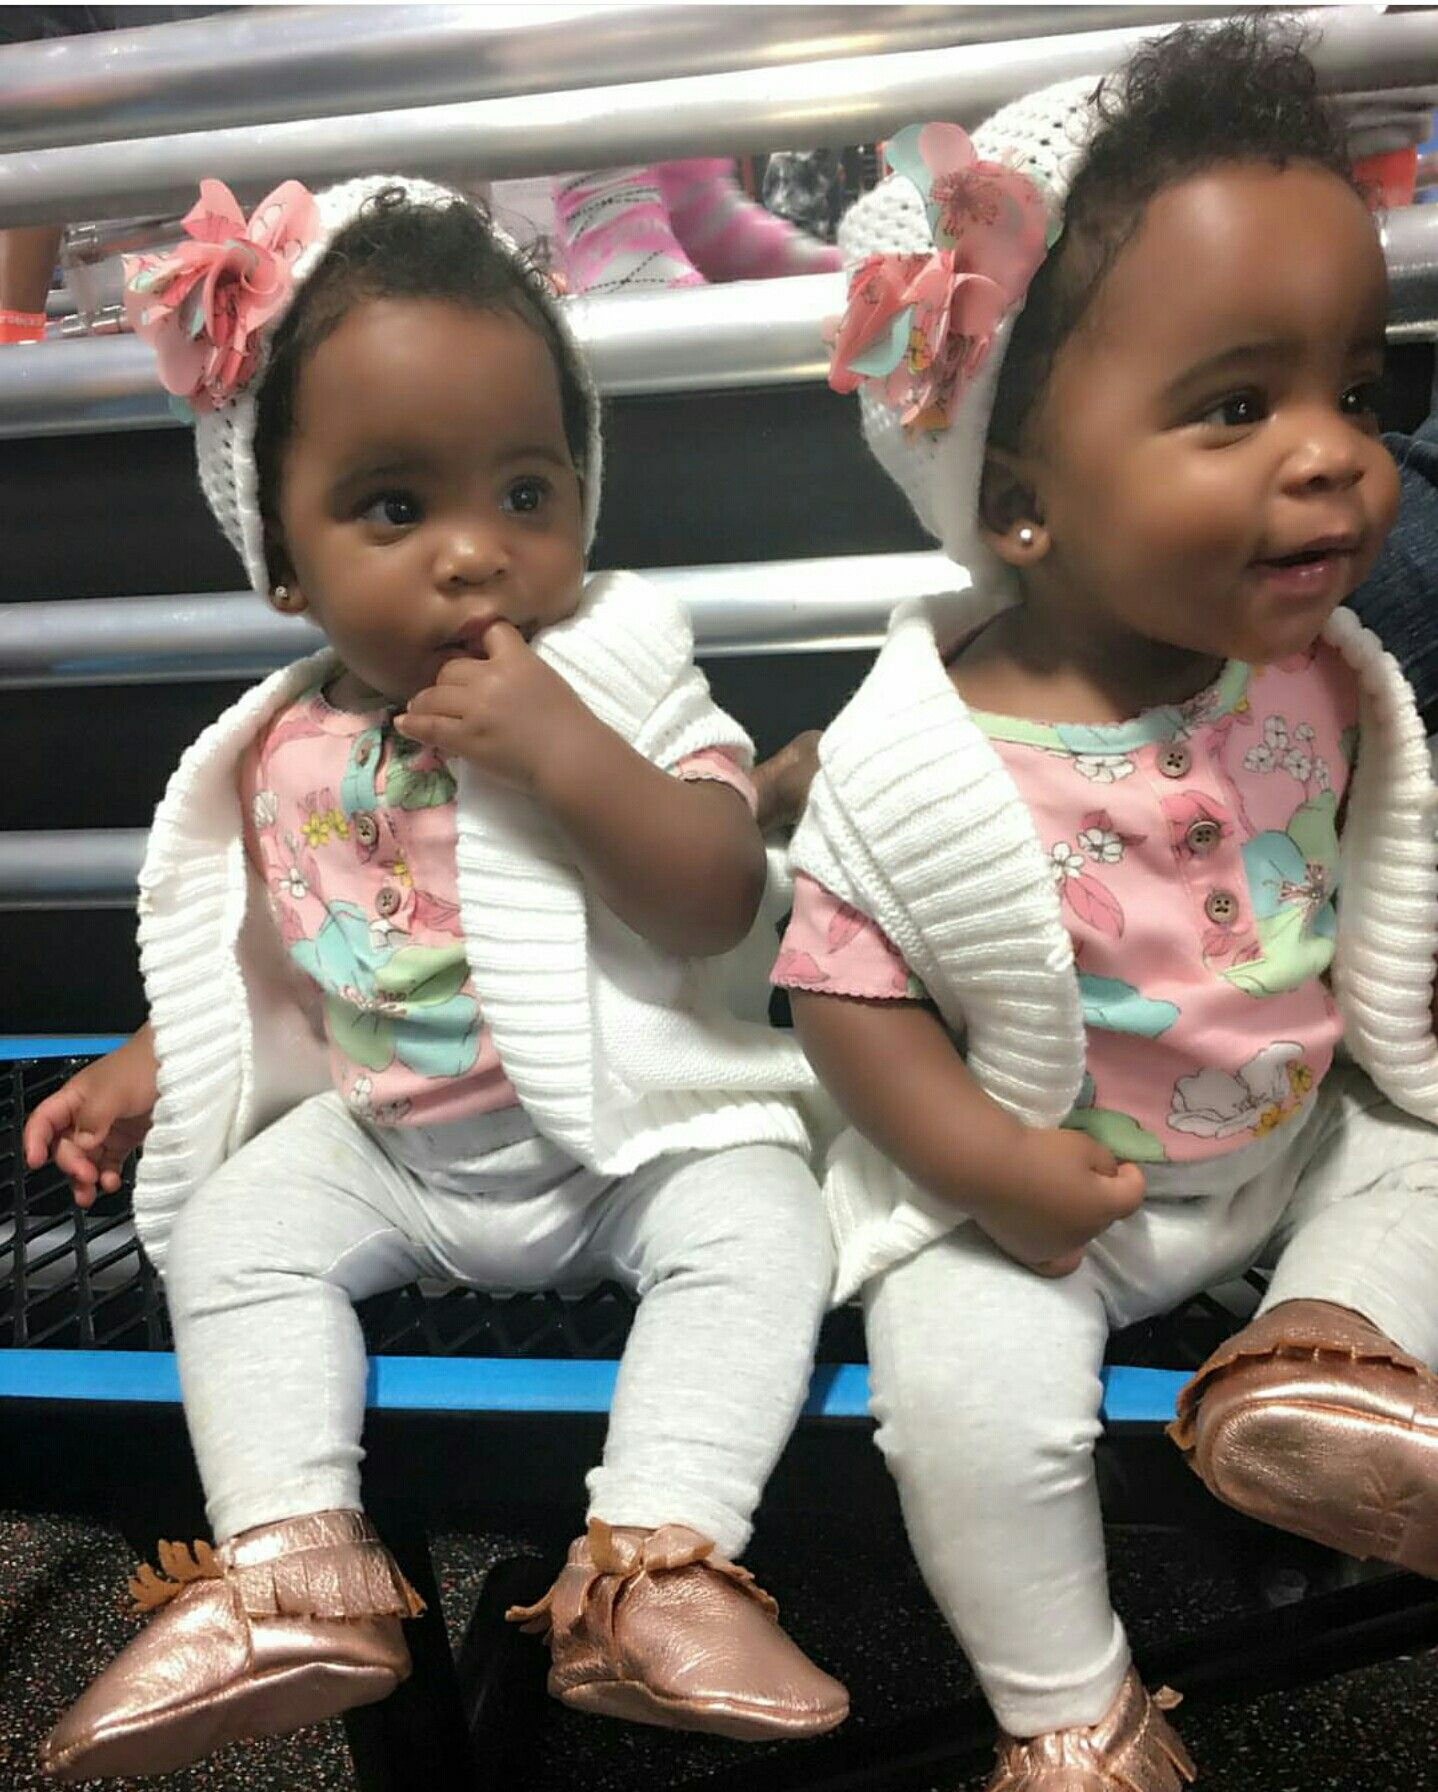 If they were my twins id name them brieeah and brielle